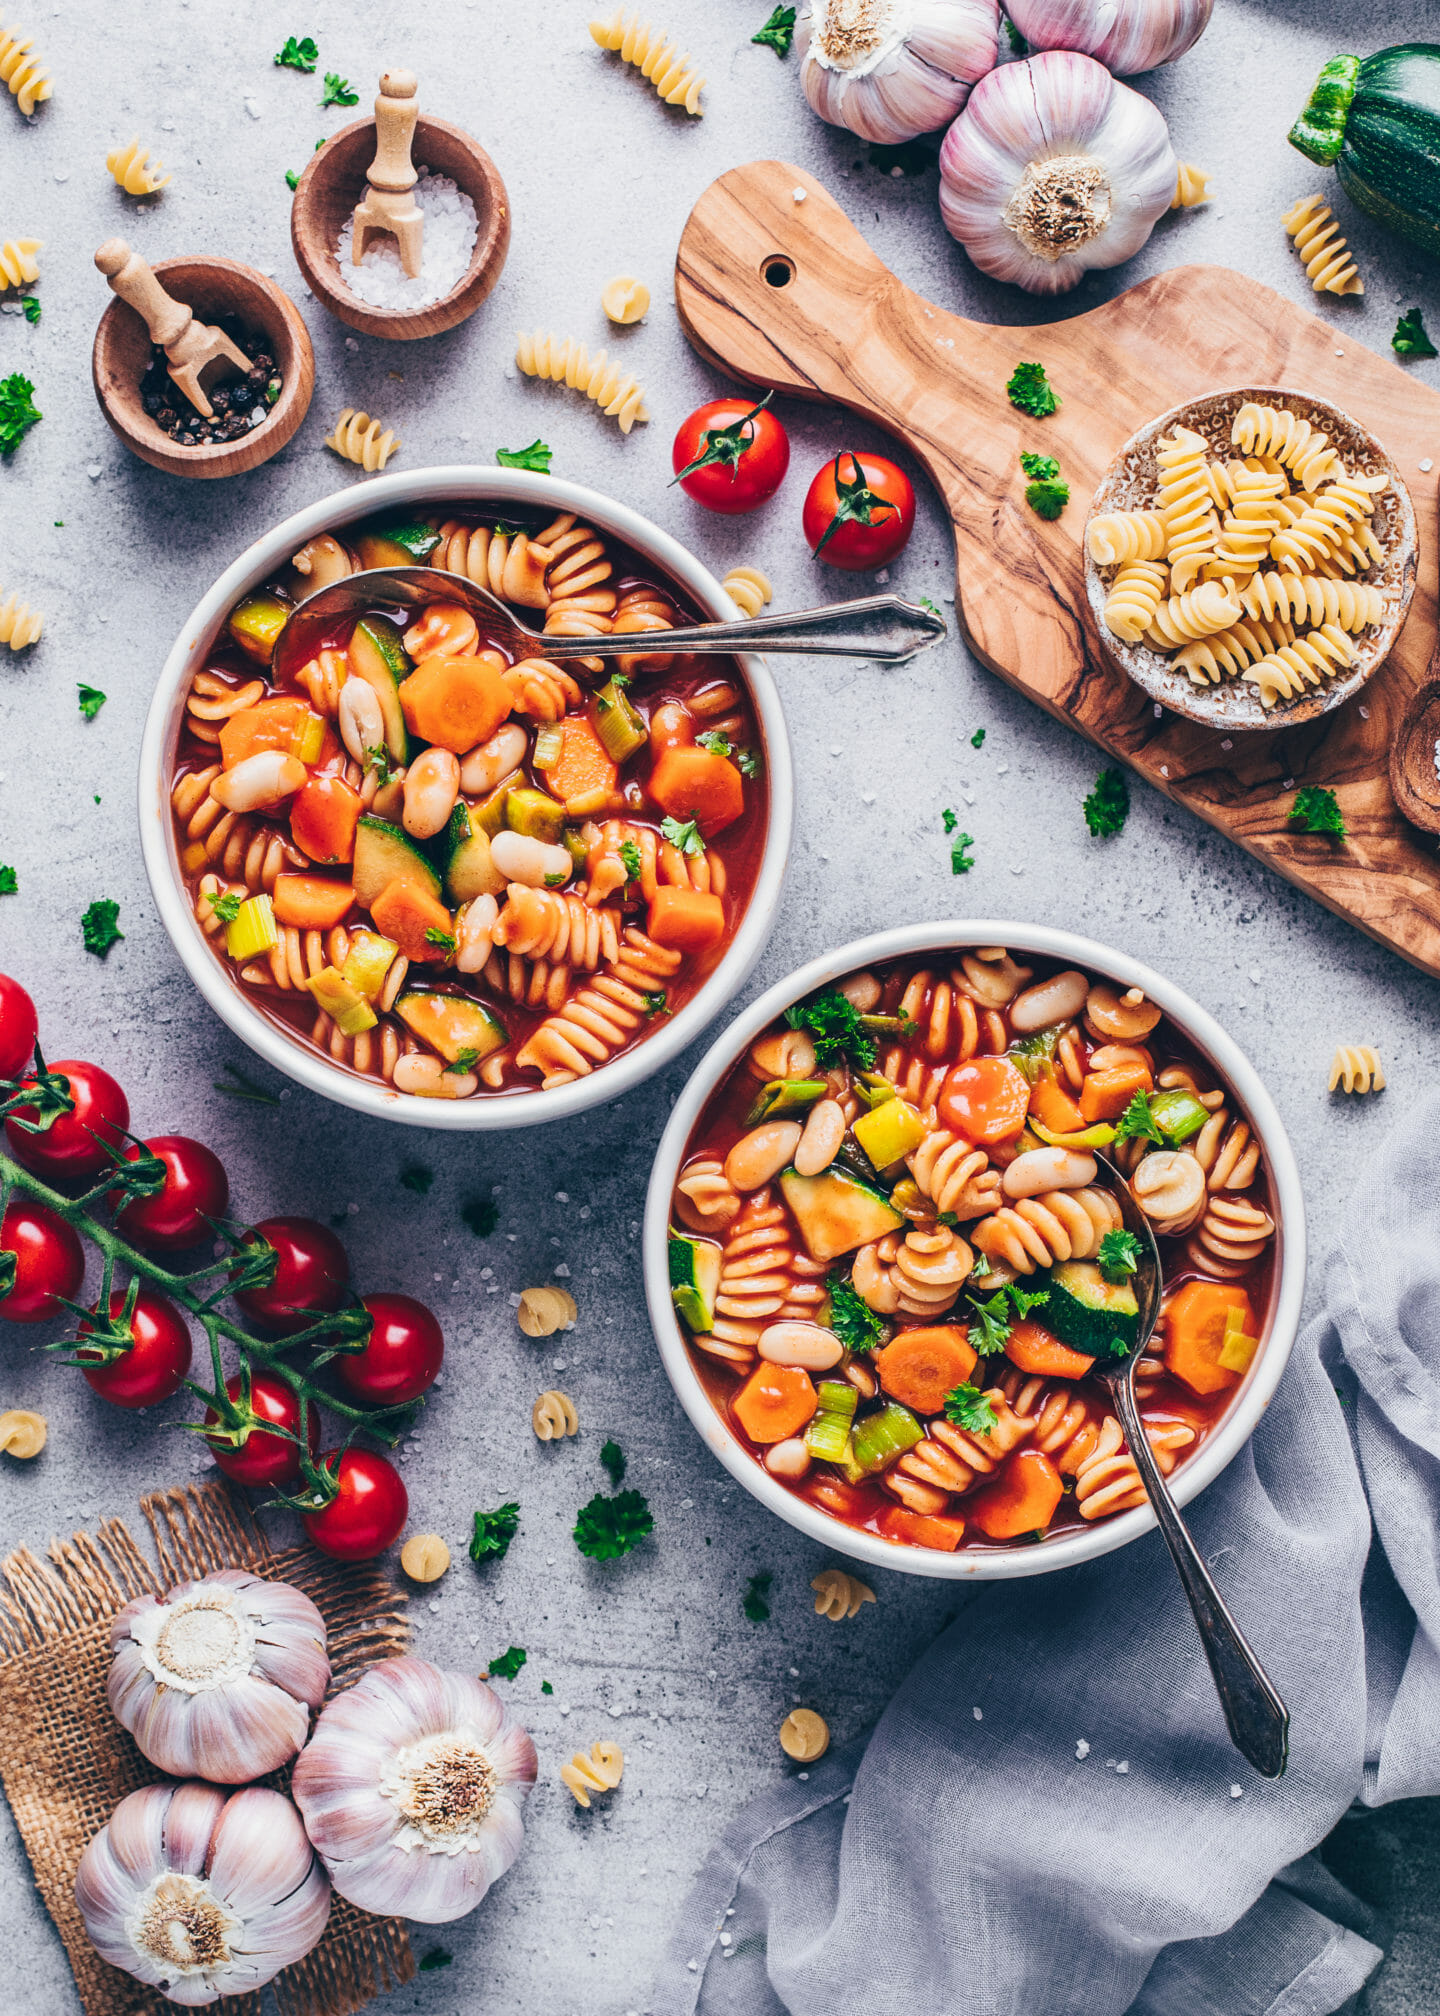 Italian minestrone soup with zucchini, carrots, leek, tomatoes, white beans and pasta